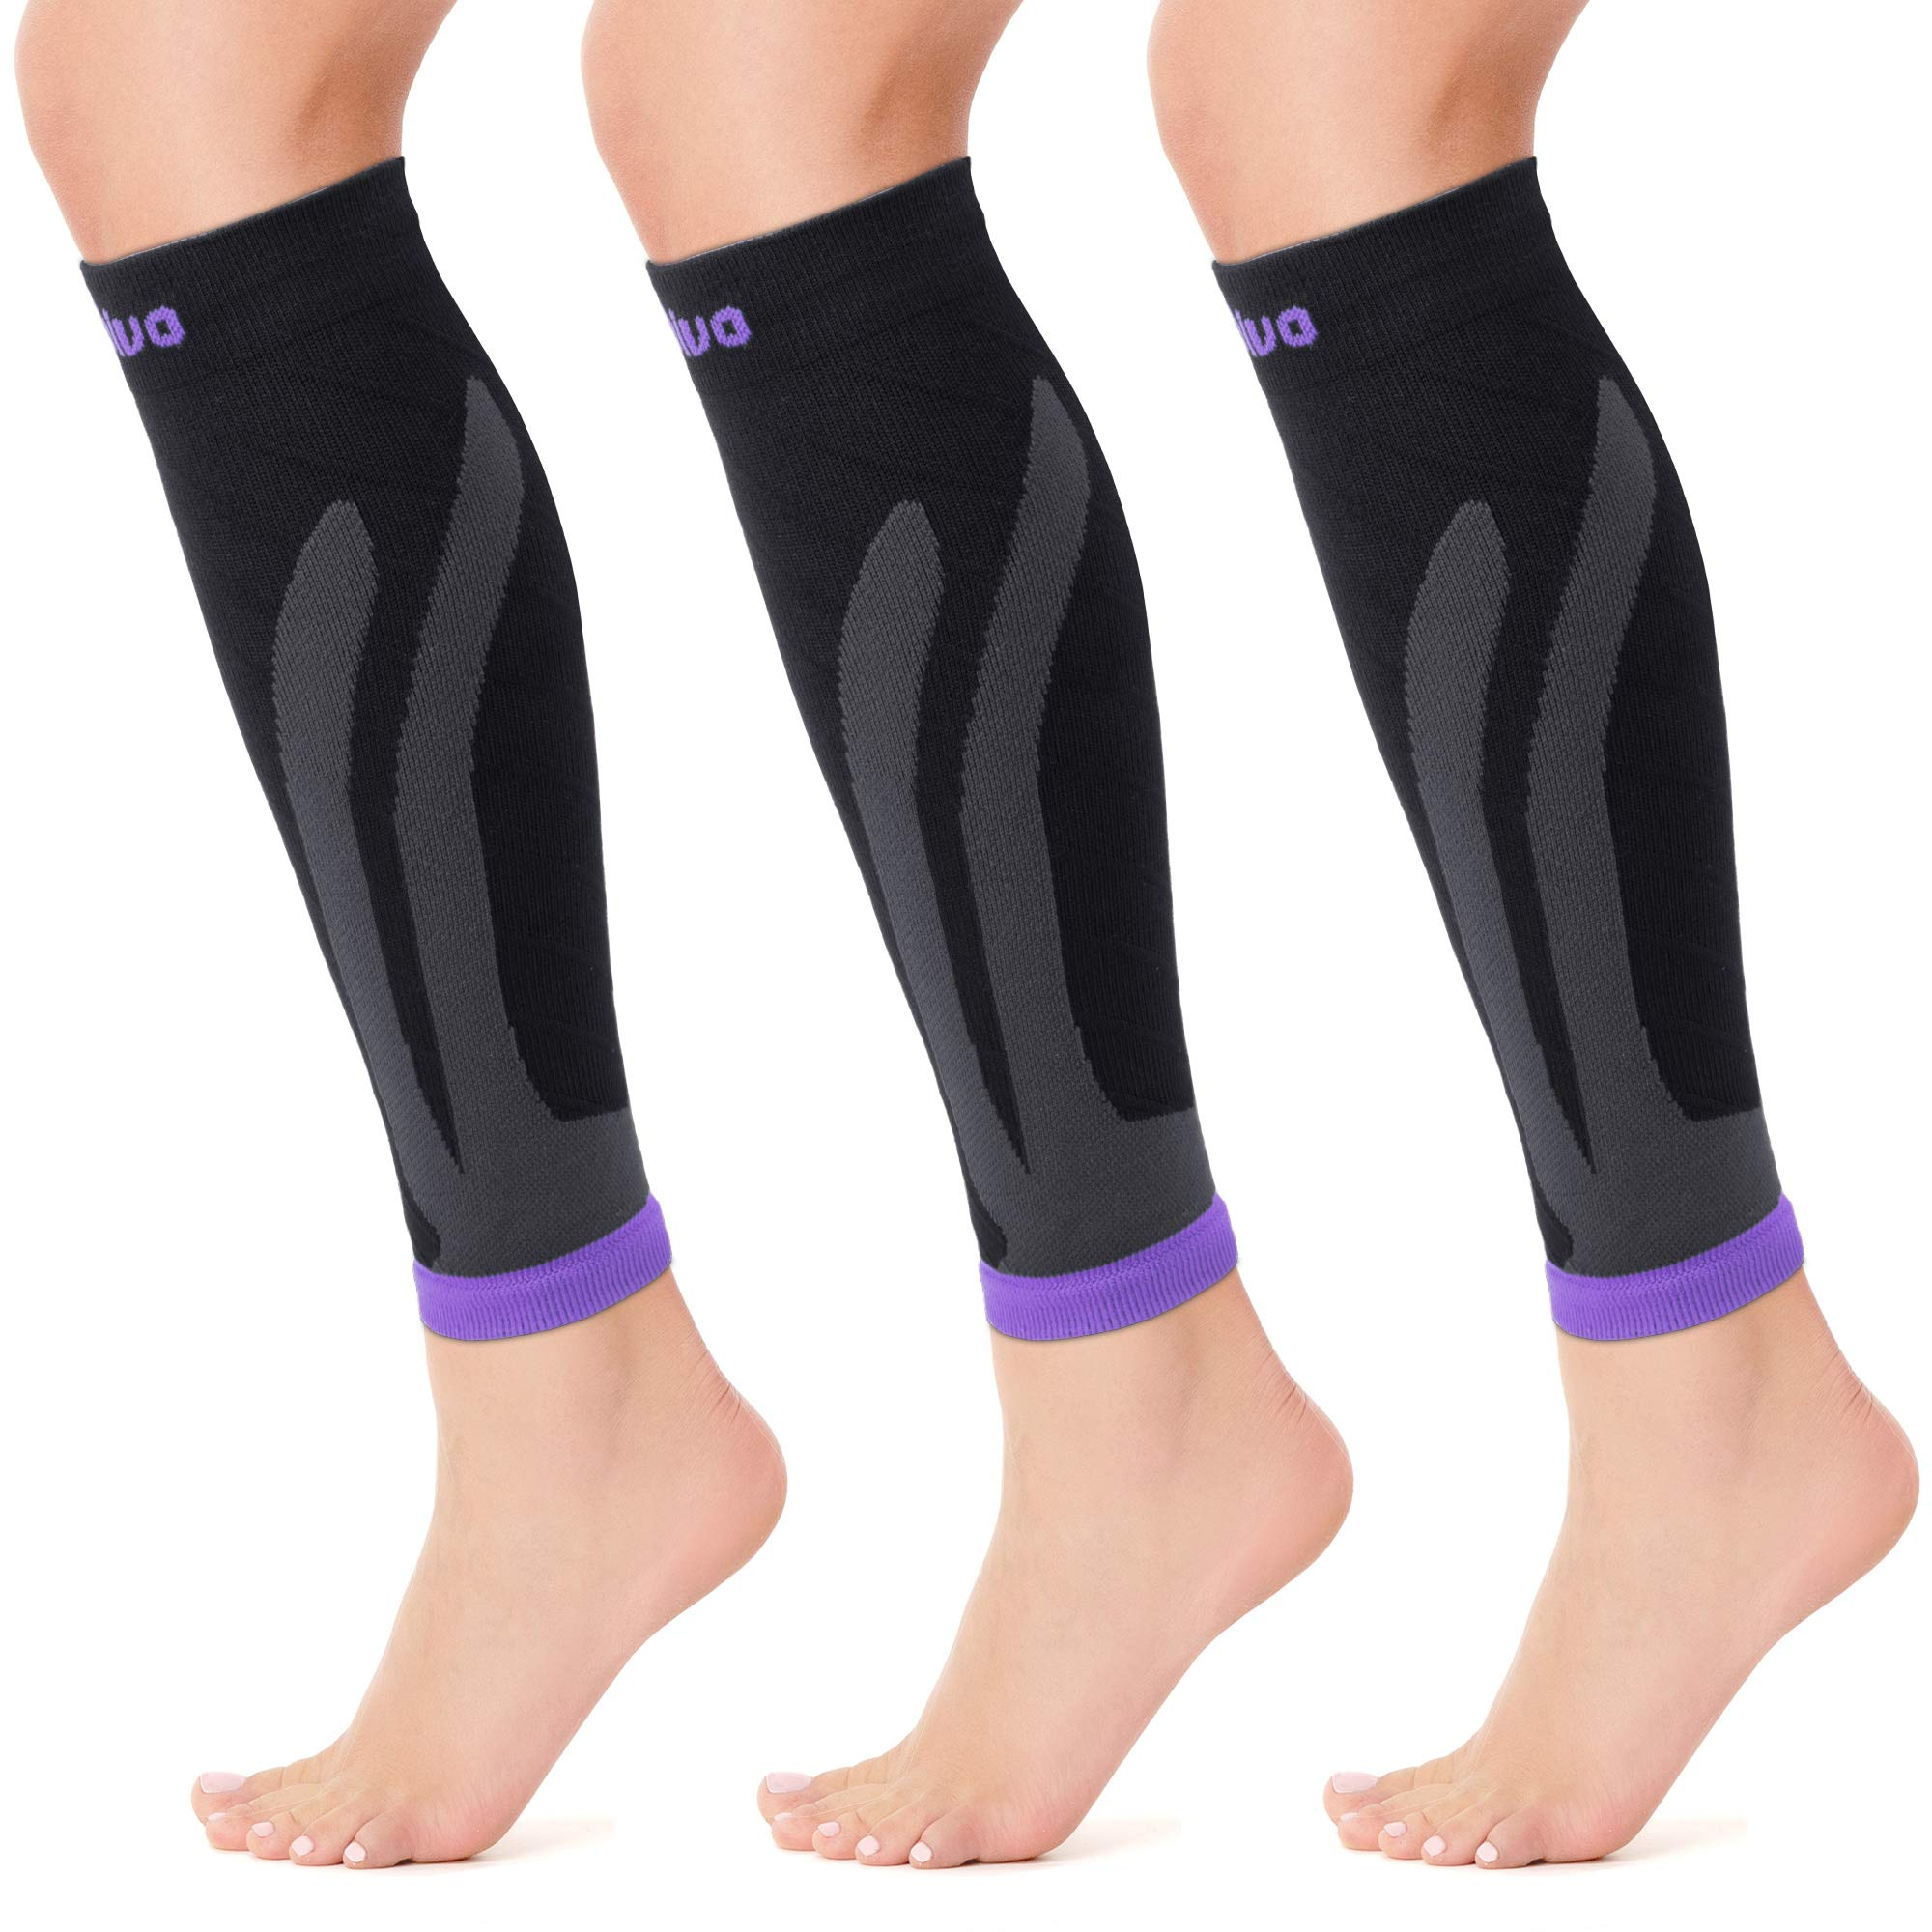 CAMBIVO 3 Pairs Calf Compression Sleeve for Women and Men,Leg Brace for Running, Cycling, Shin Splint Support for Working Out